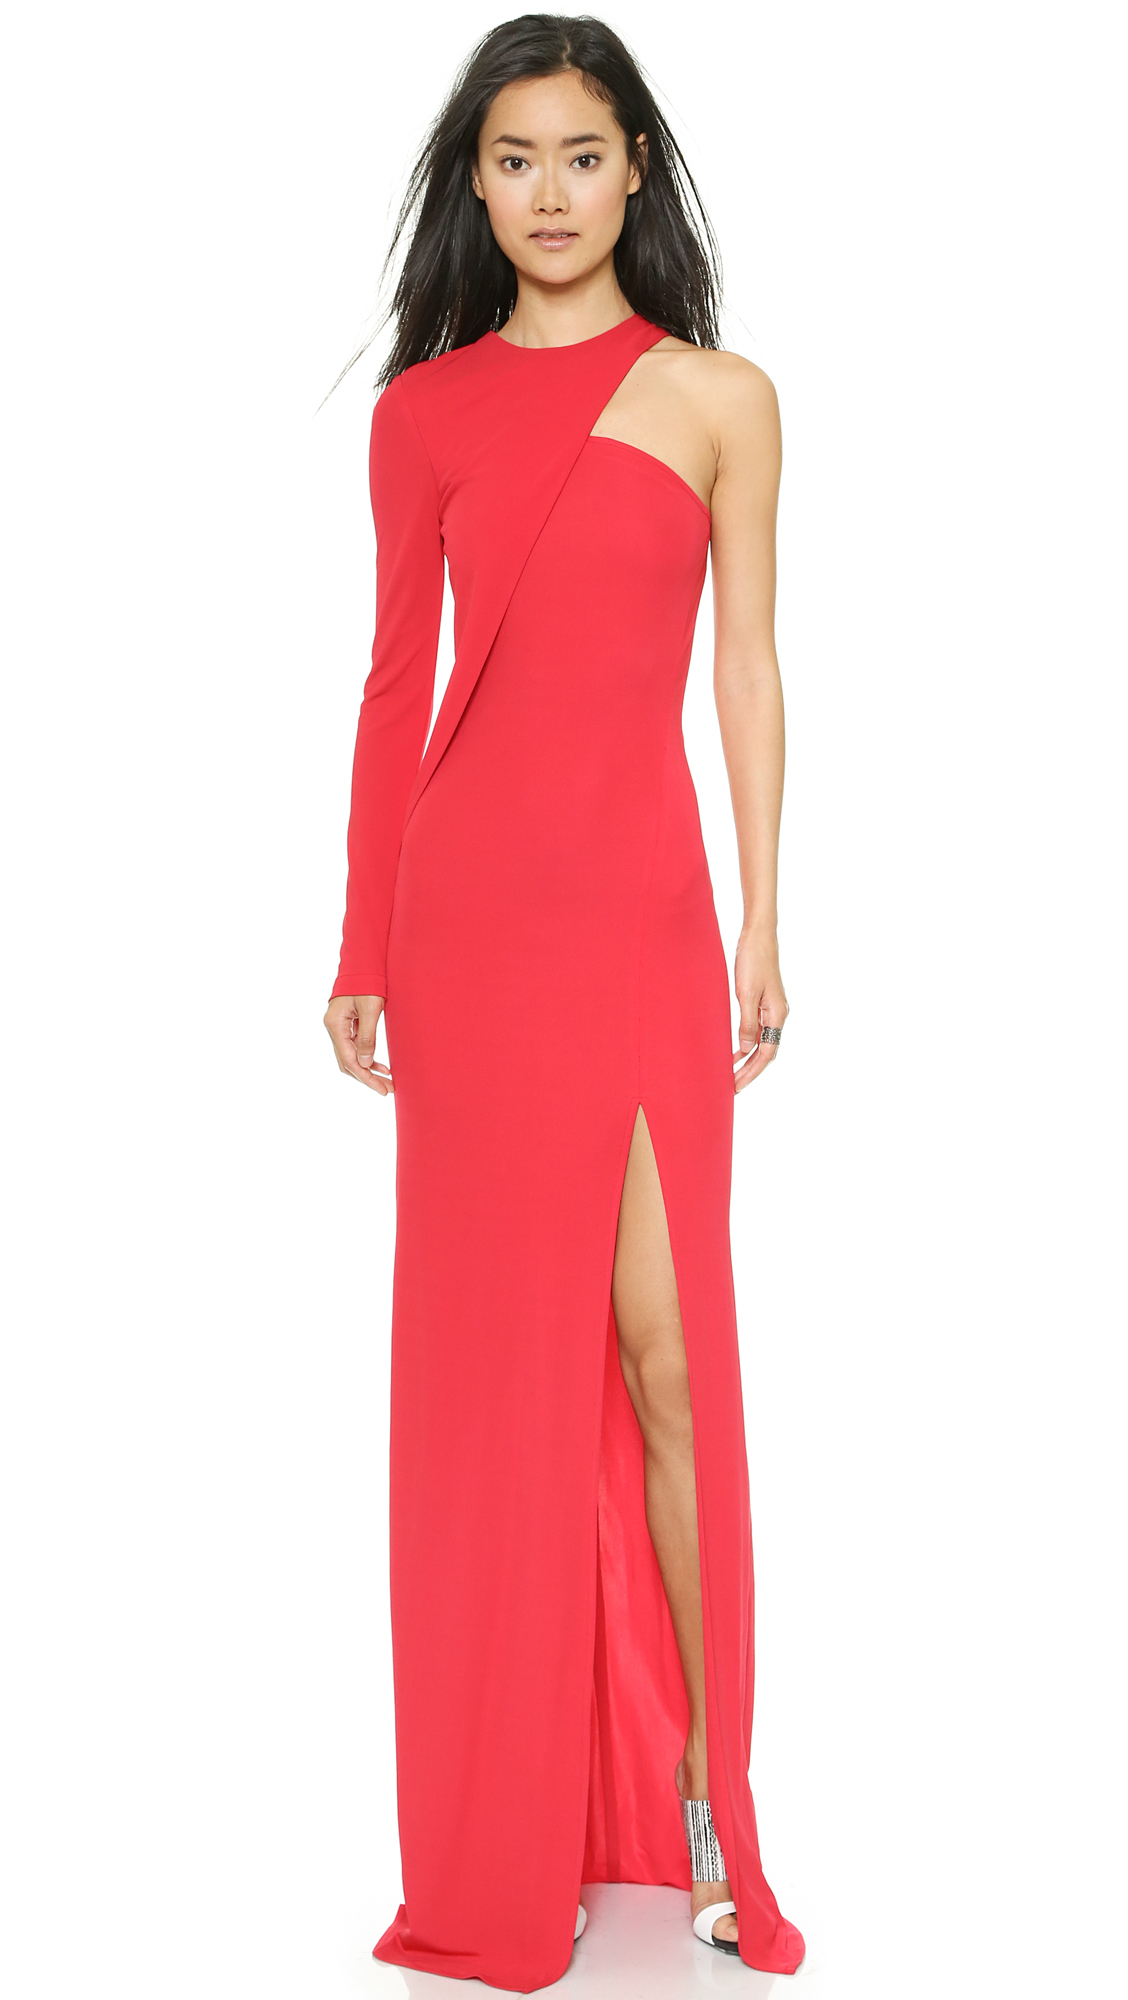 Cut25 by yigal azrouël One Shoulder Long Sleeve Gown in Red | Lyst